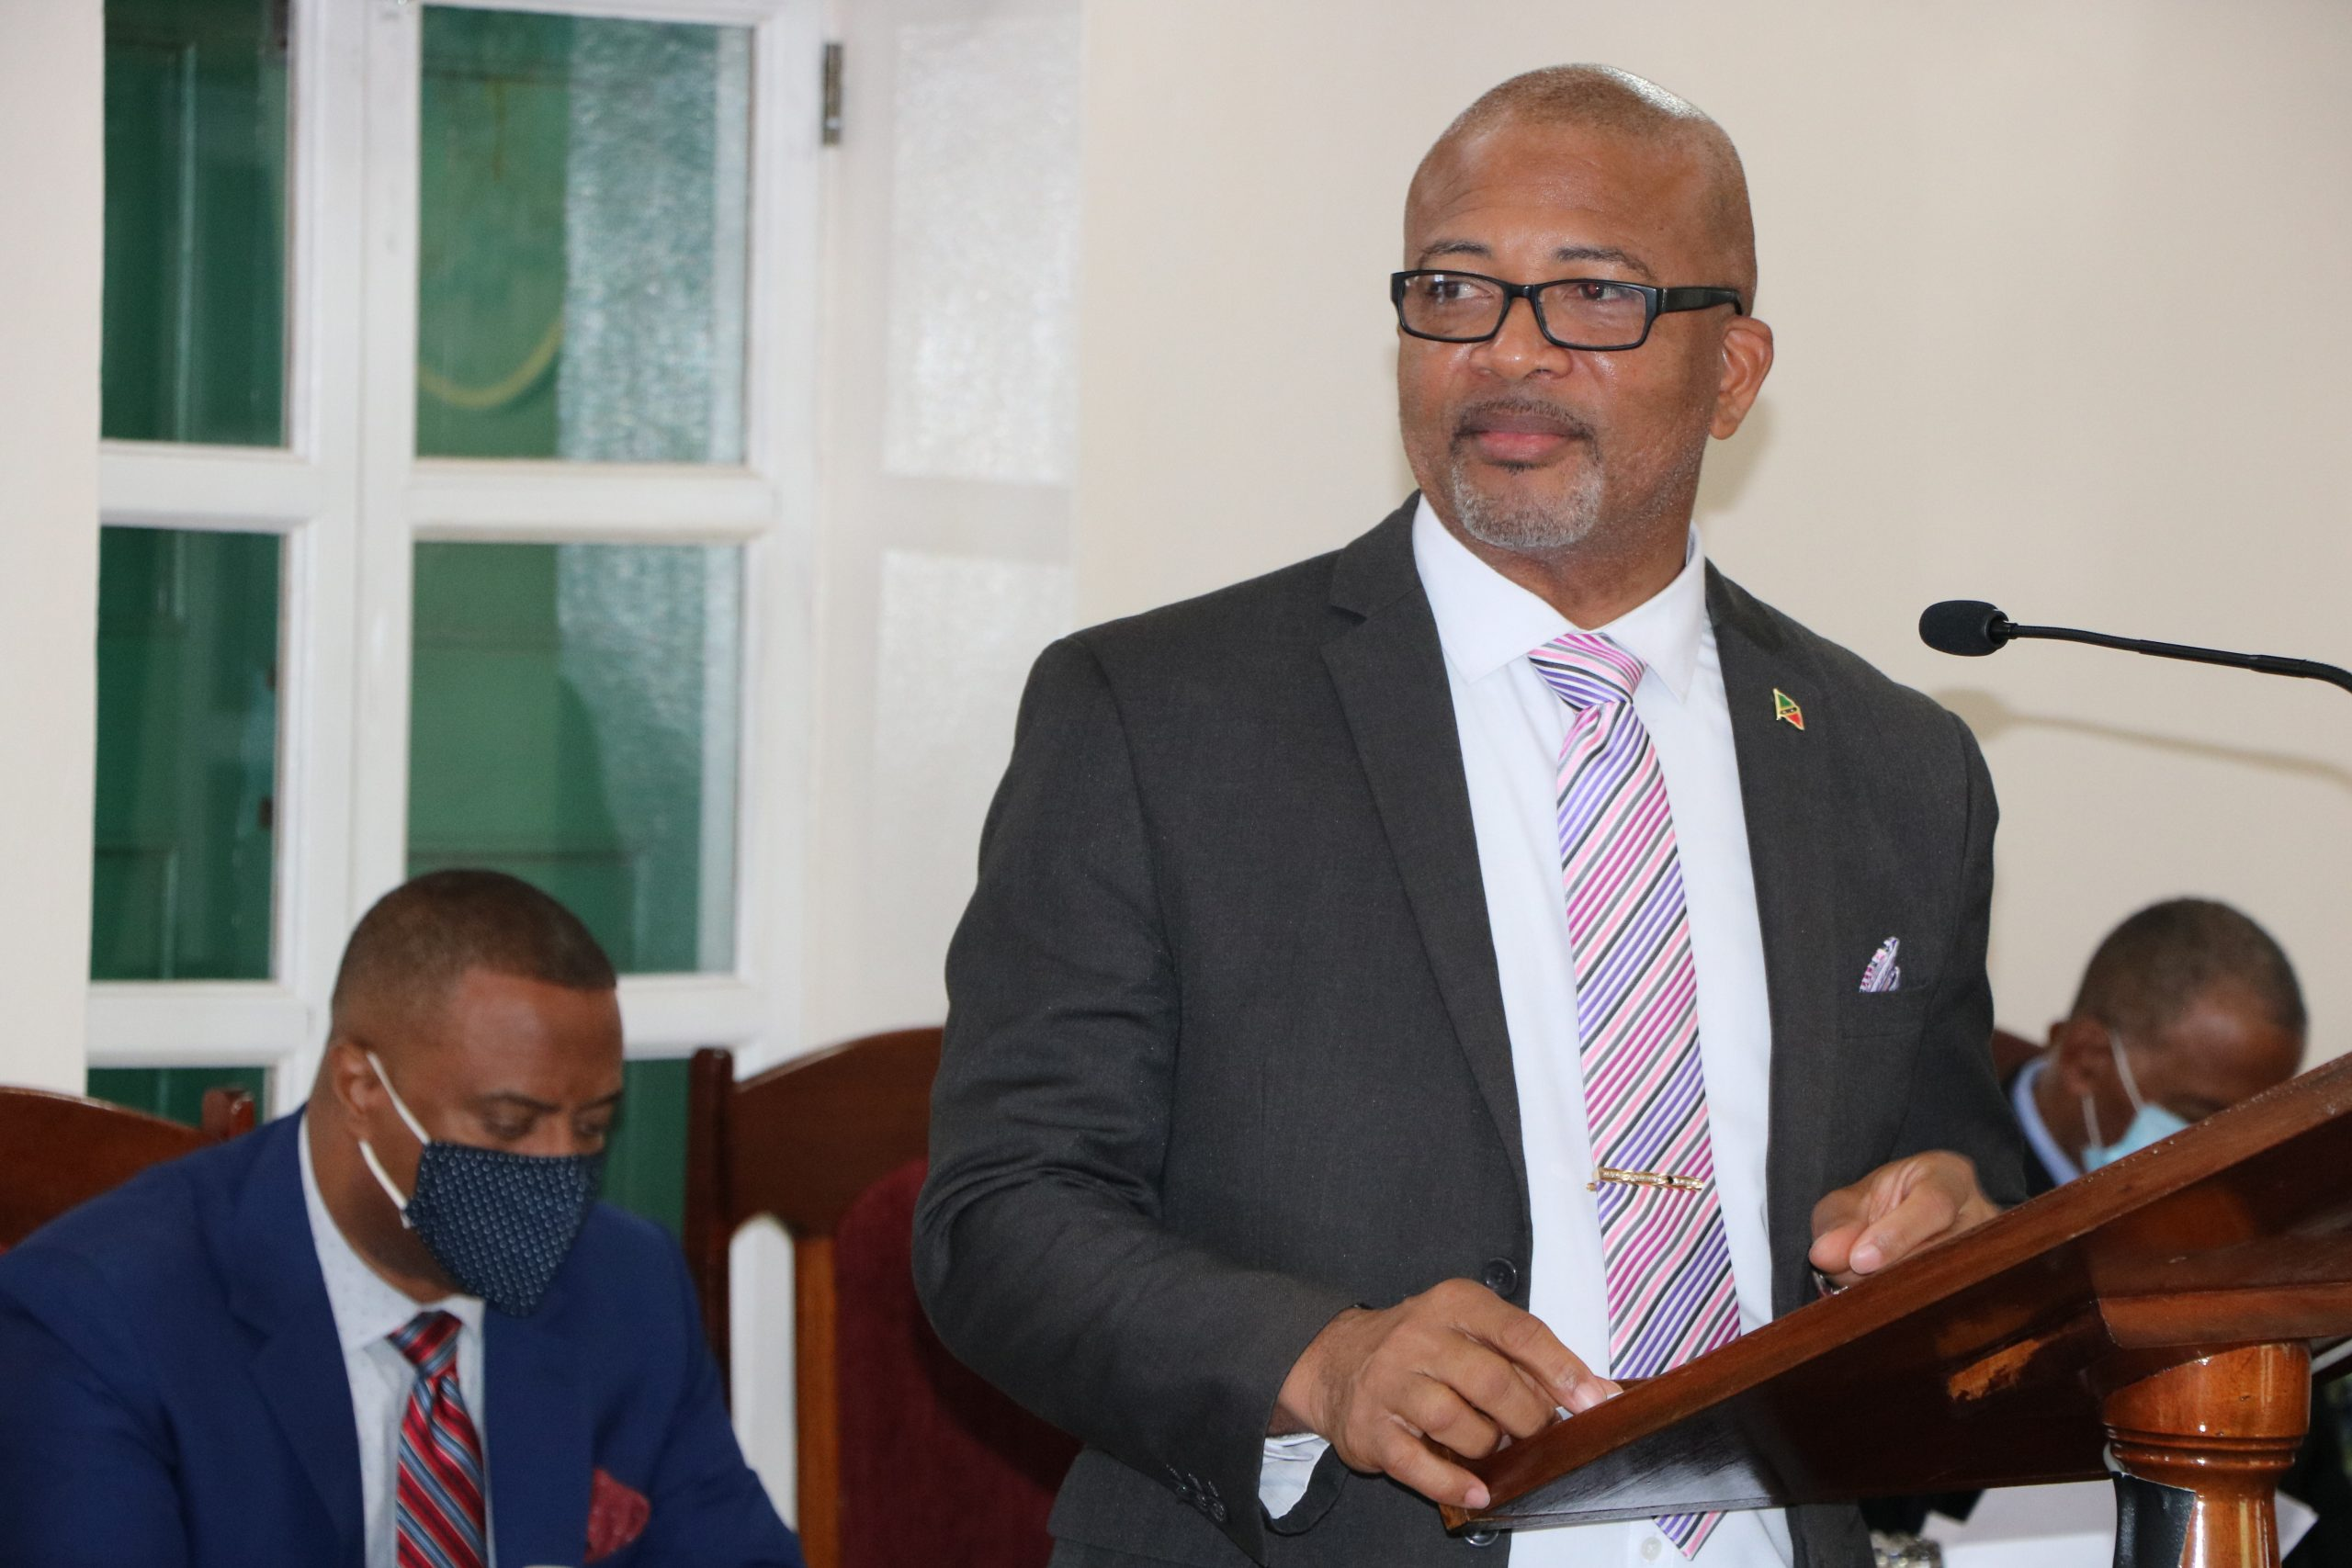 Hon. Spencer Brand, Minister of Labour in the Nevis Island Administration making his presentation at a sitting of the Nevis Island Assembly on July 13, 2021